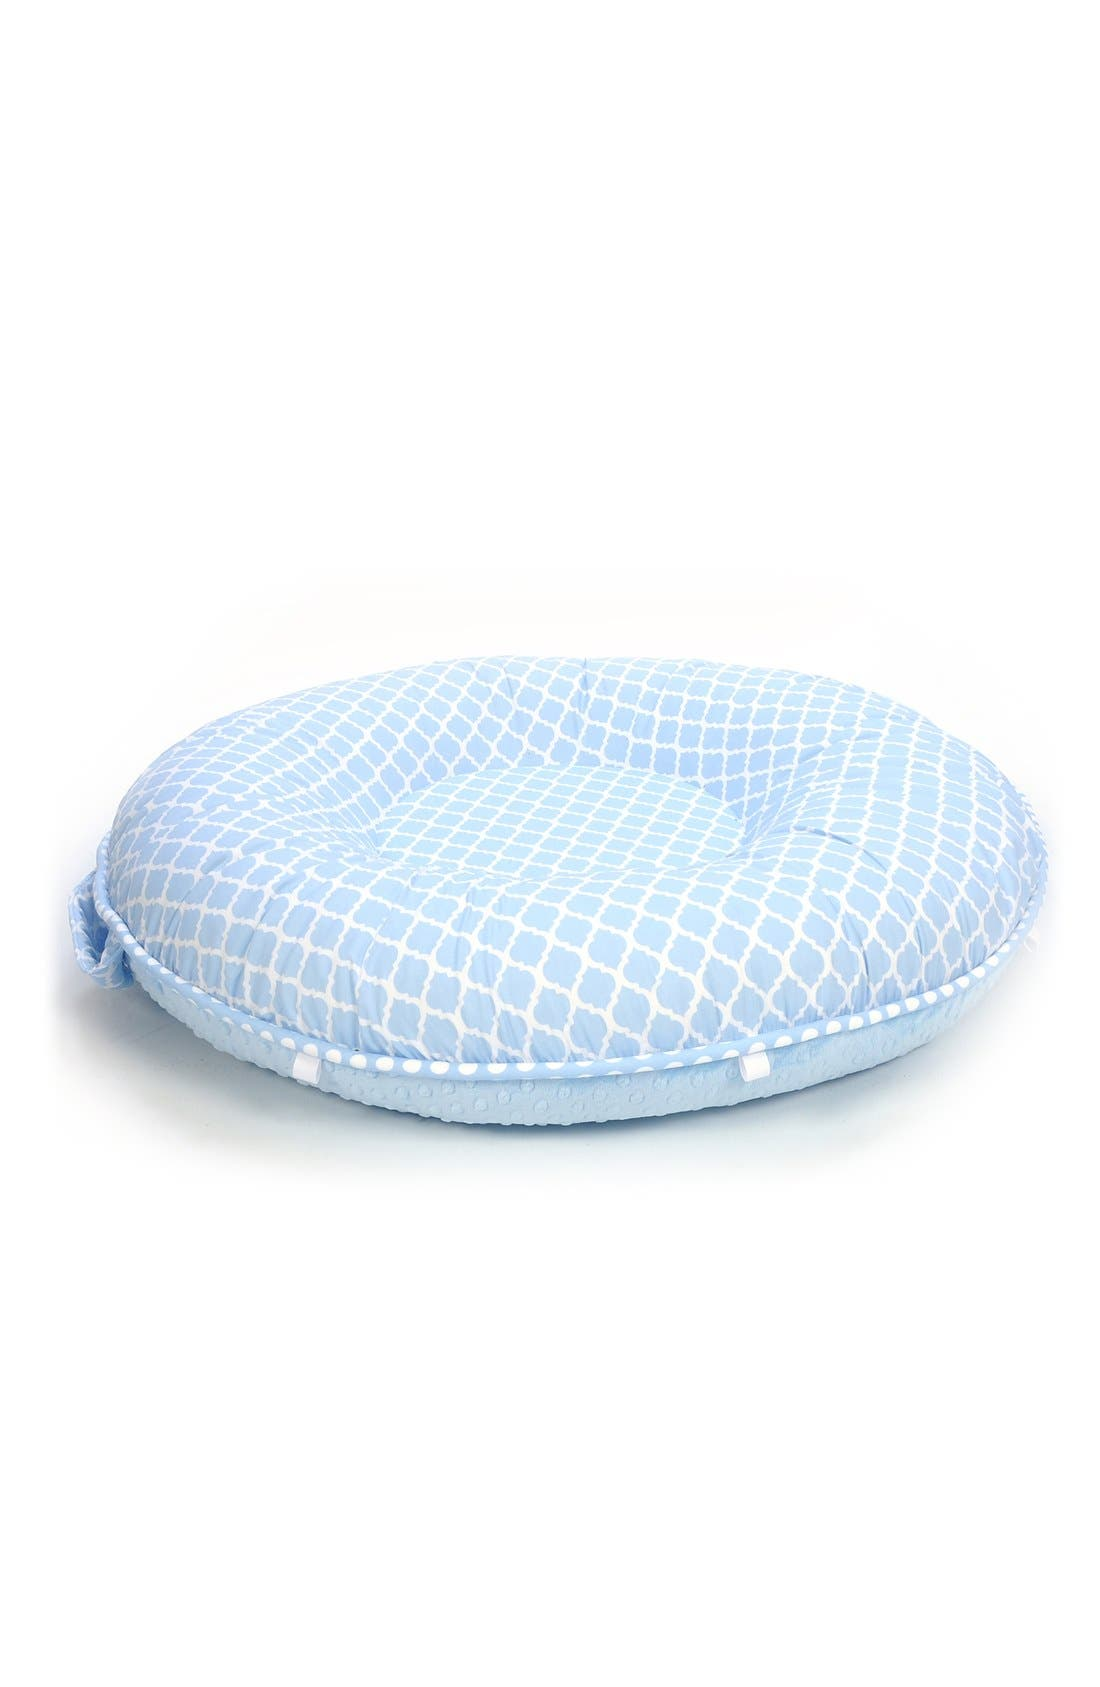 'Jack' Portable Floor Pillow,                             Main thumbnail 1, color,                             401